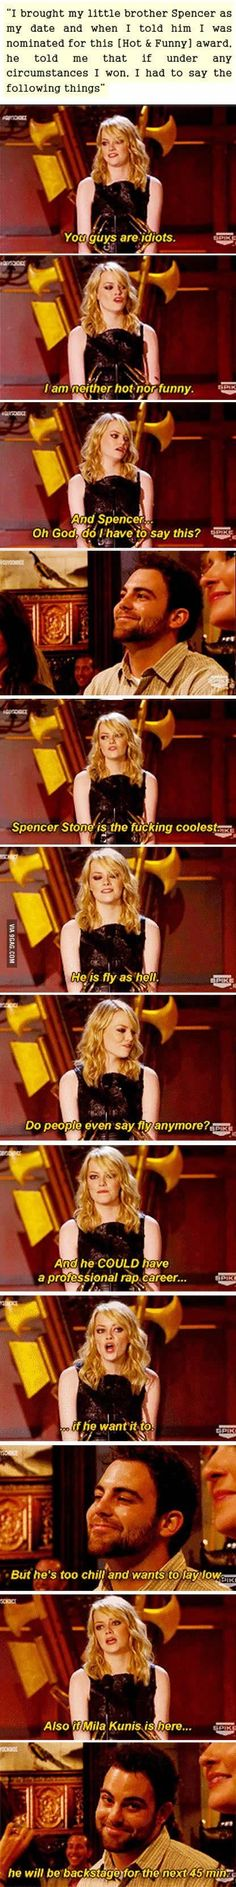 Lol Emma Stone and Spencer!!